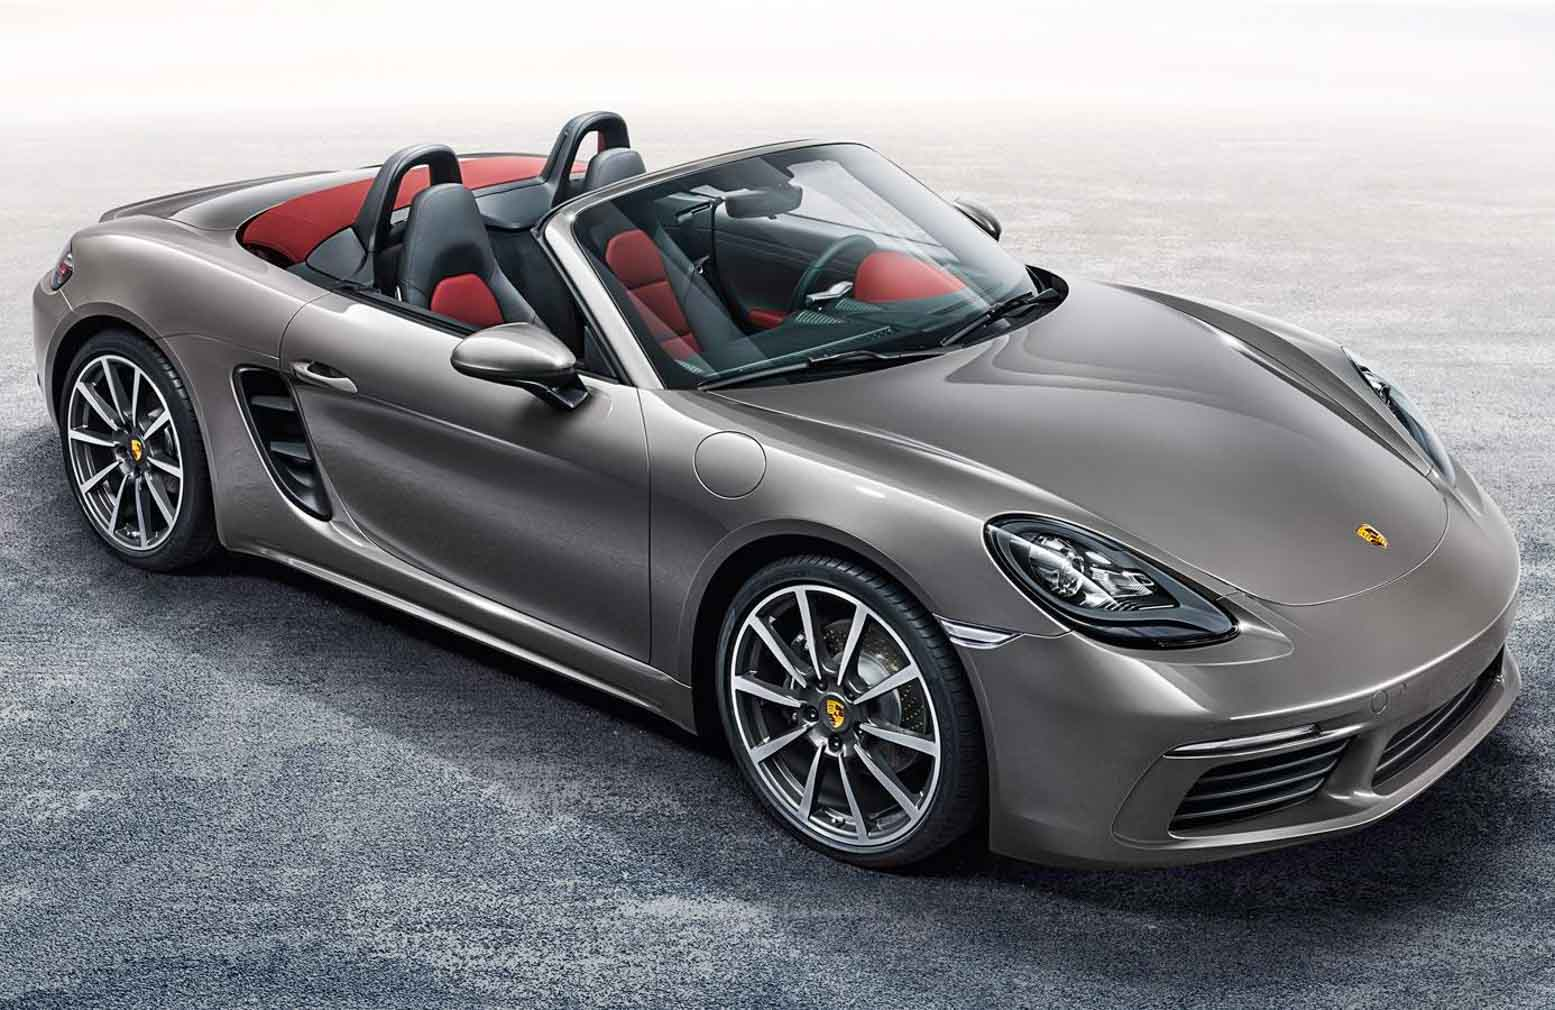 Top 5 Two Door Sports Cars Under Rs 1 Crore In The Indian Market